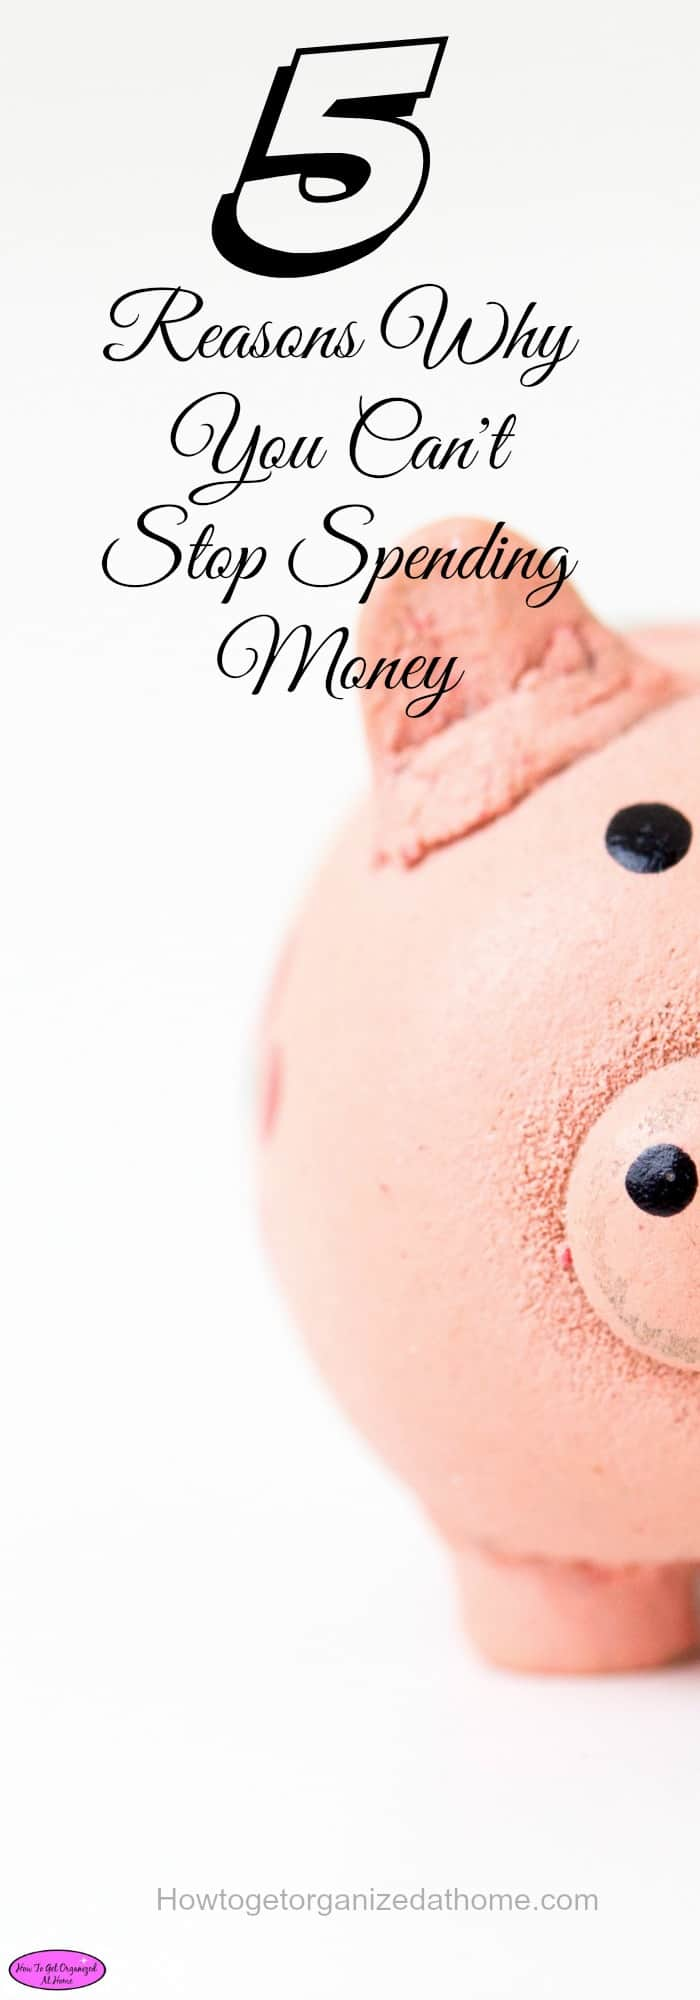 If you can't stop spending money then you will run in to financial difficulties at some point. It is easy to take control if you know how.